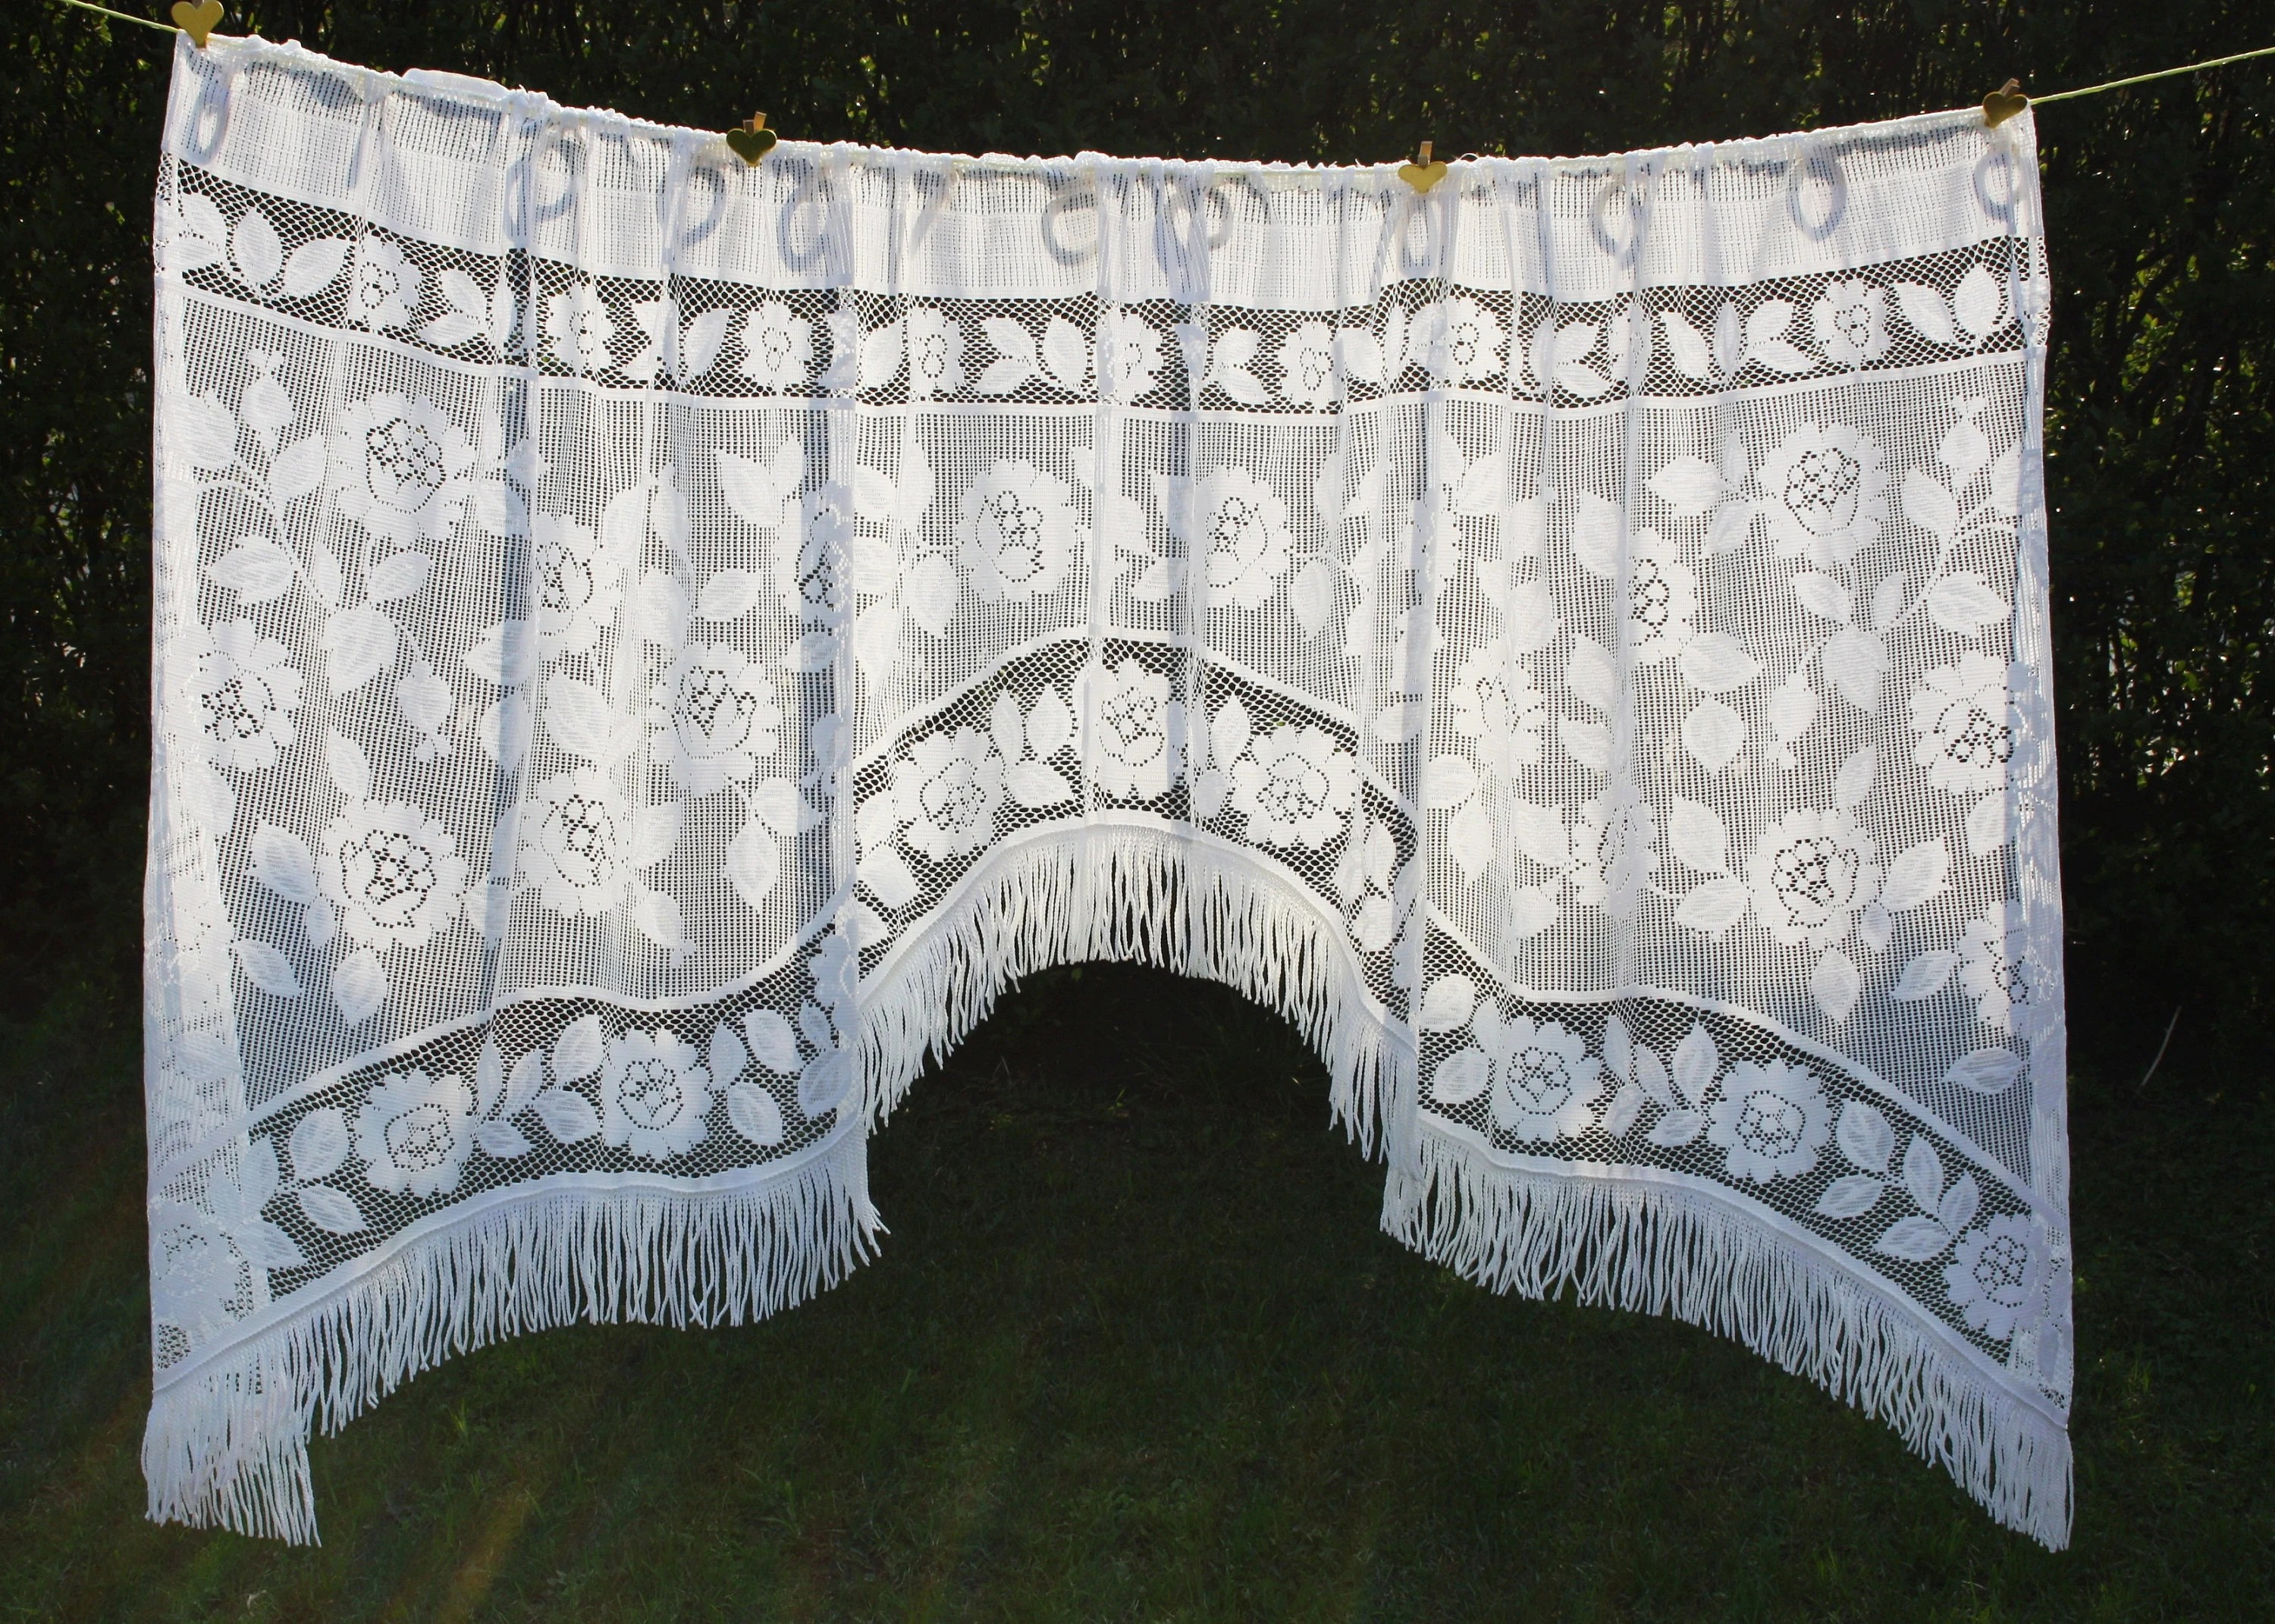 French Lace Curtains French Lace Curtains Farmhouse Curtains Shabby Chic Curtains